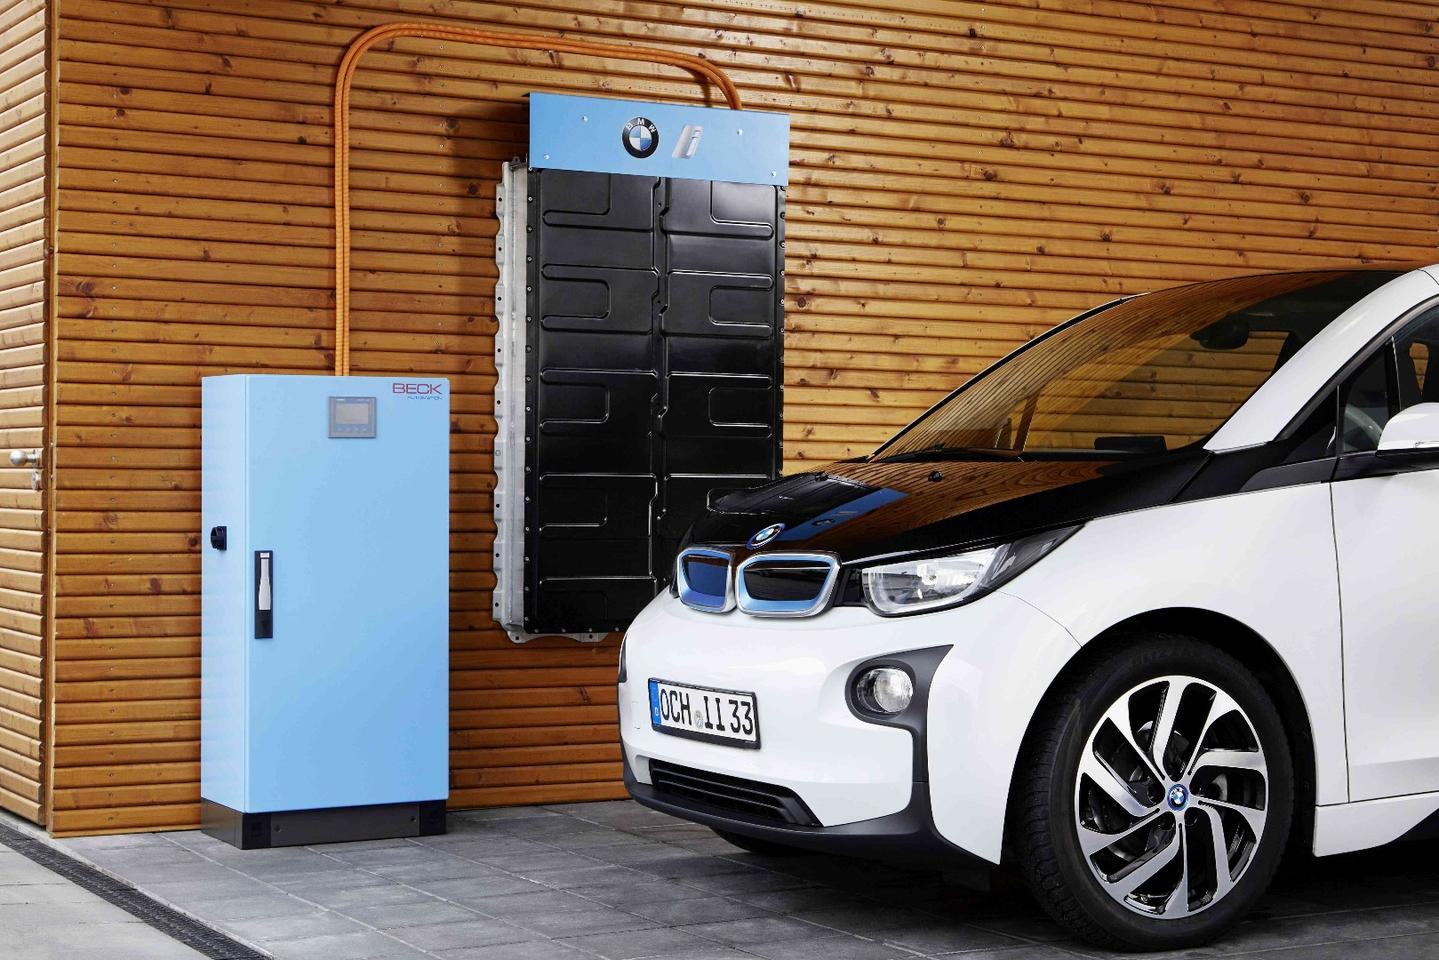 BMWexplores an i3 battery pack-based home energystorage system